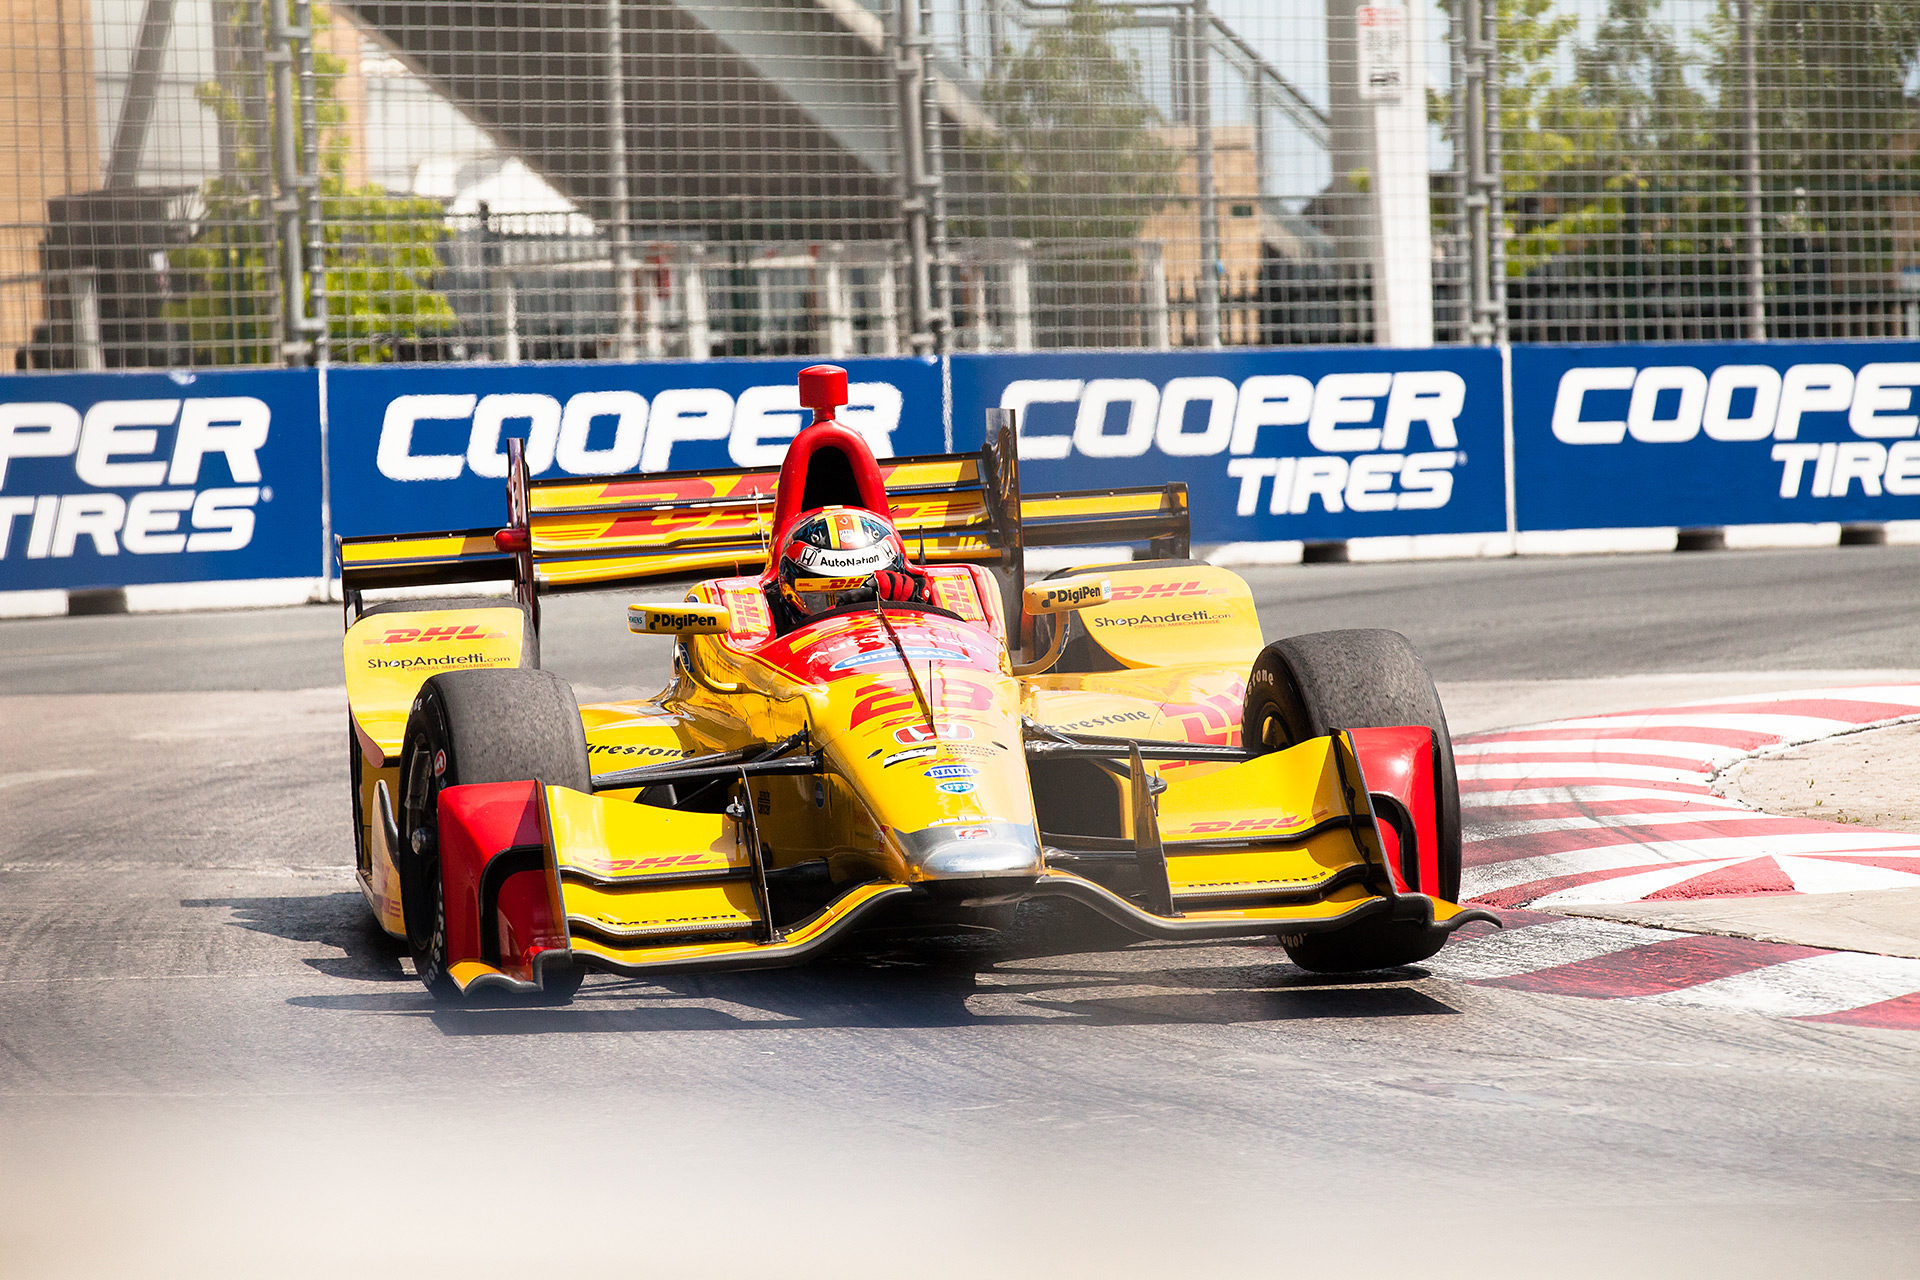 July 15, 2017 - Toronto, ON - DHL Honda driver, Ryan Hunter-Reay (28) powers through turn 5 on Saturday during qualifying for the Honda Indy. Hunter-Reay qualified 16th fastest. ( Jeffrey Turford / TDP )